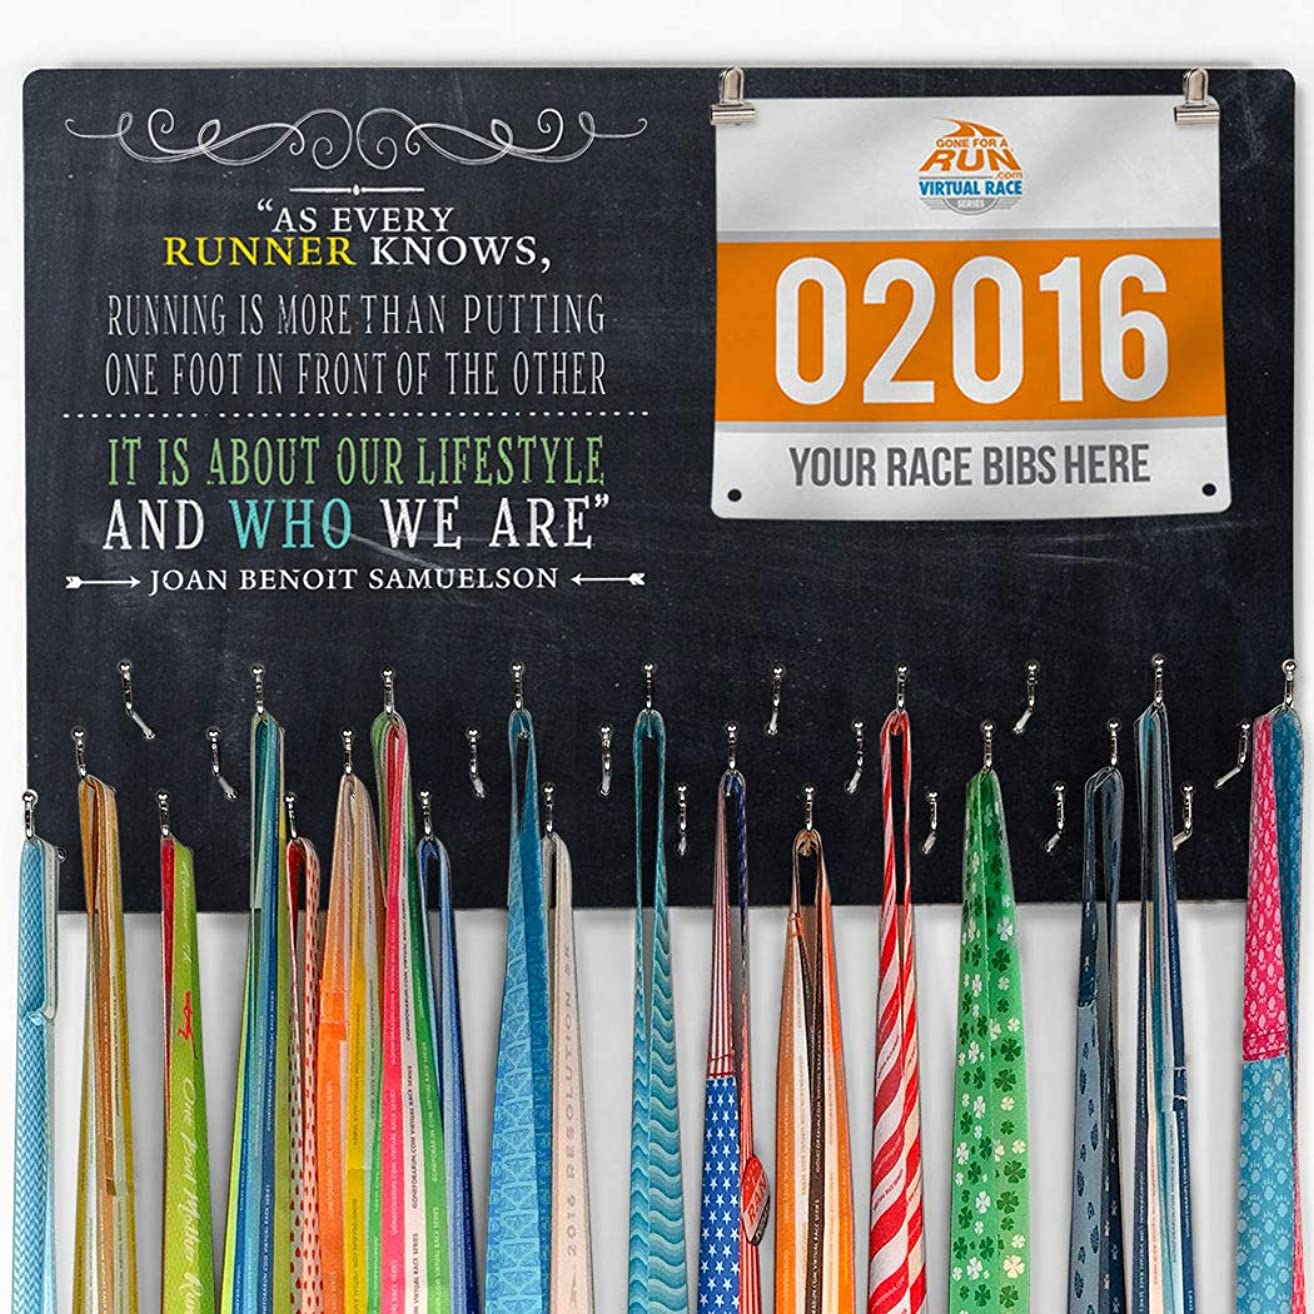 Gone For a Run Hooked on Medal Hanger & Bib Display | Runners Know | Colors